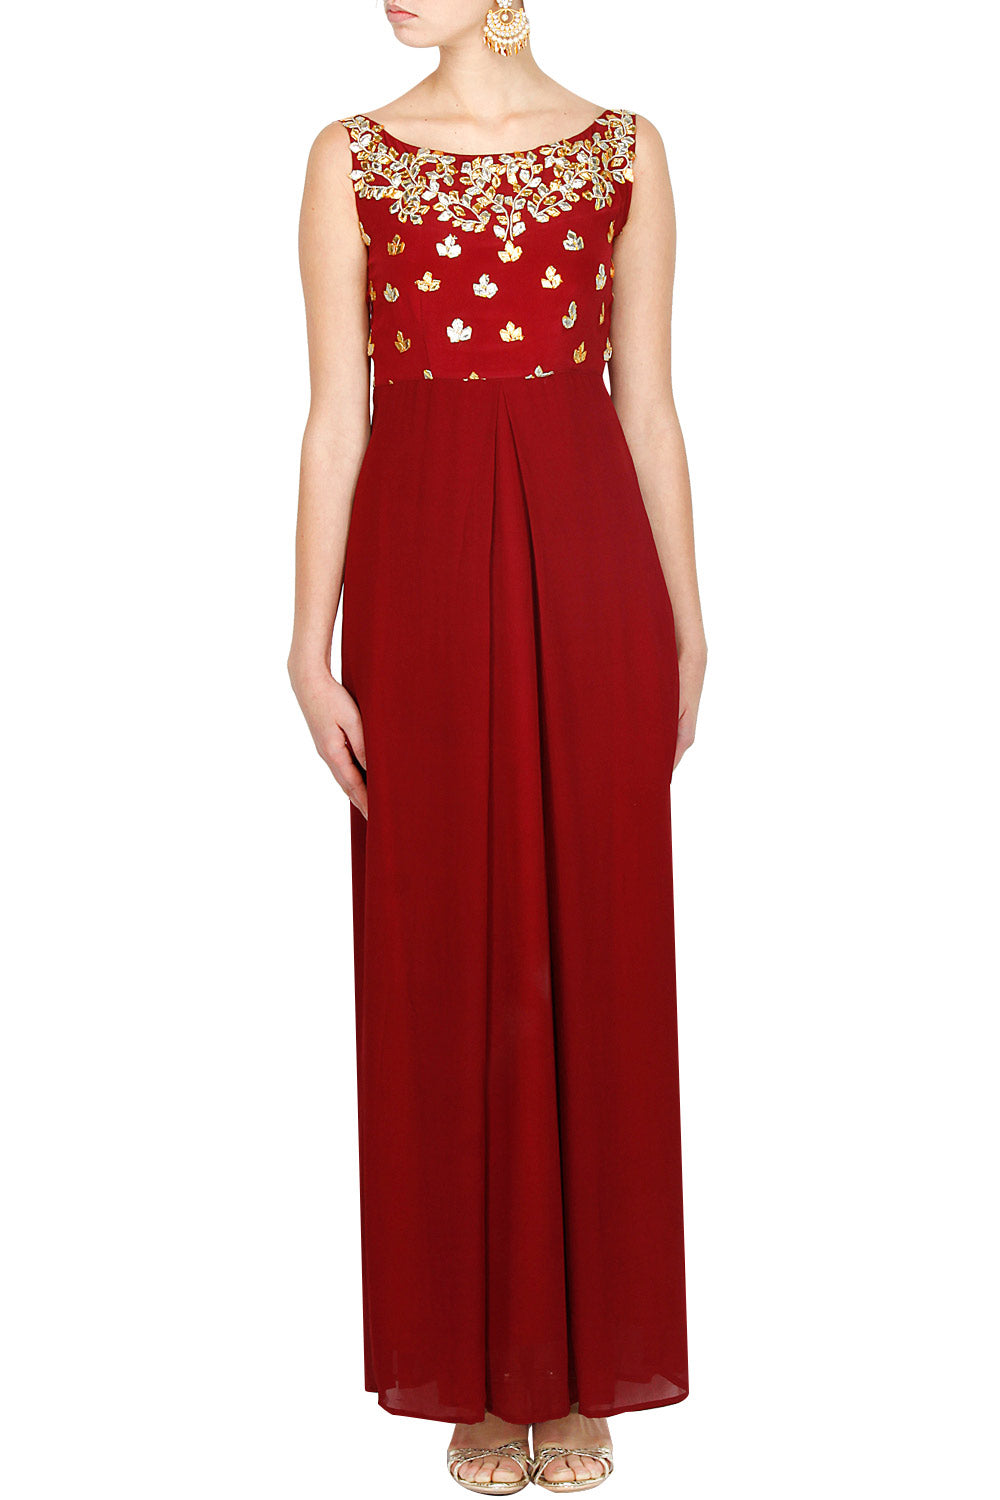 Maroon gota pati gown - The Grand Trunk